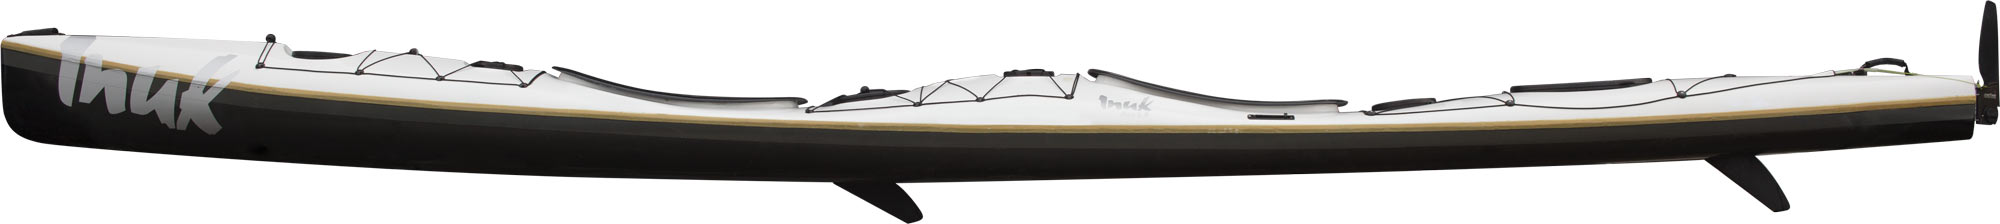 Kirton Inuk Duo 6.8 double sea kayak